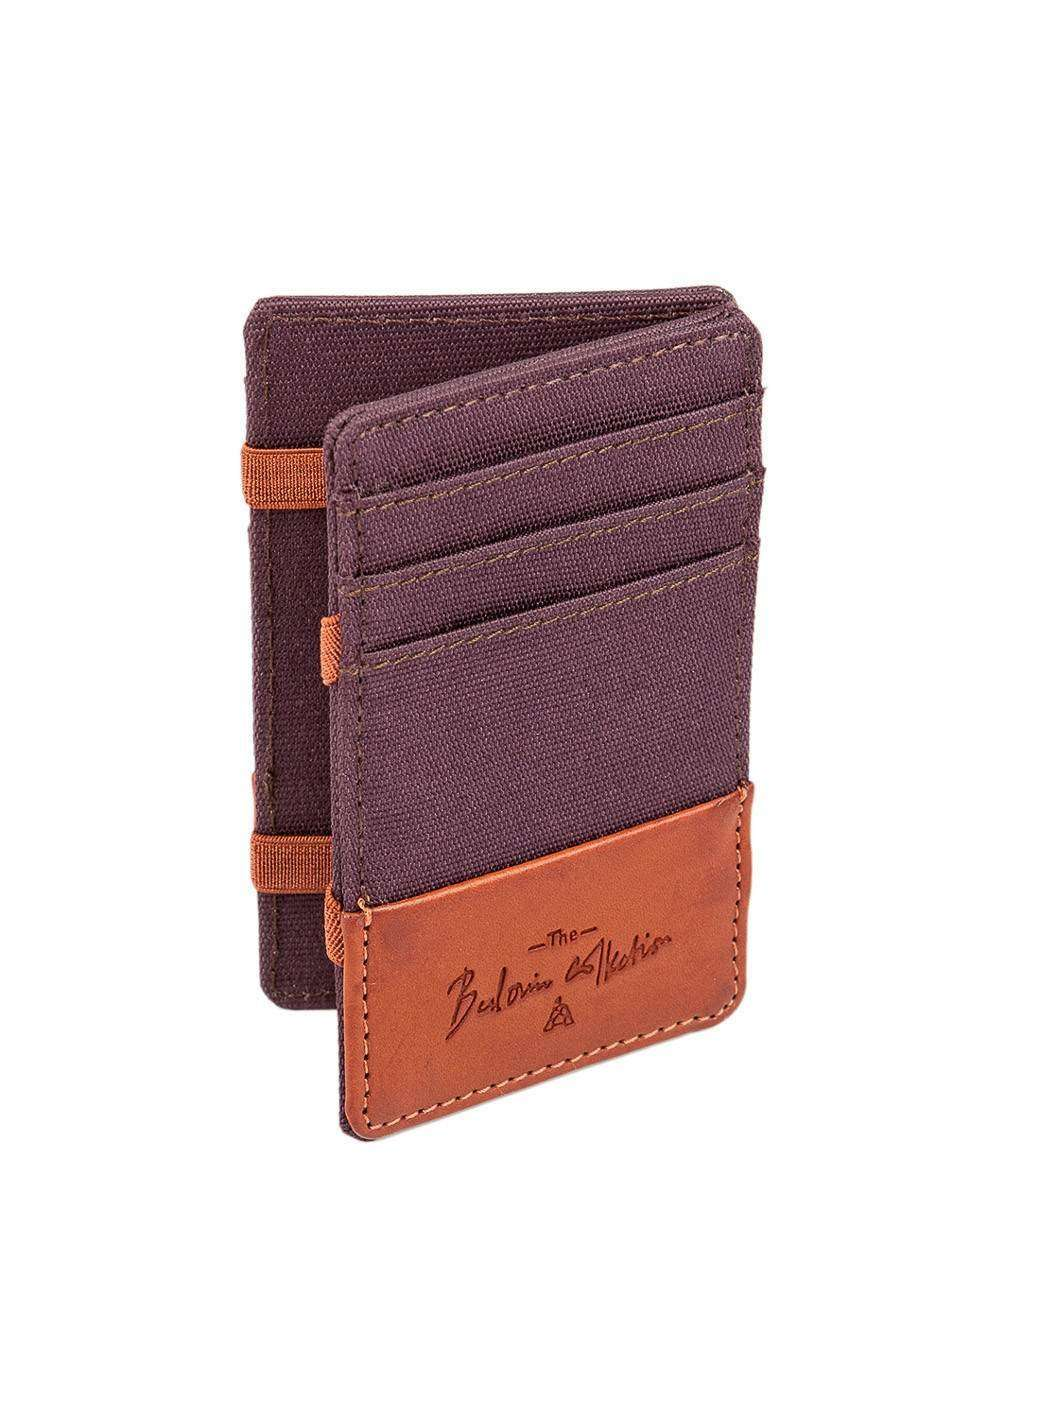 Bedouin Magic Wallet